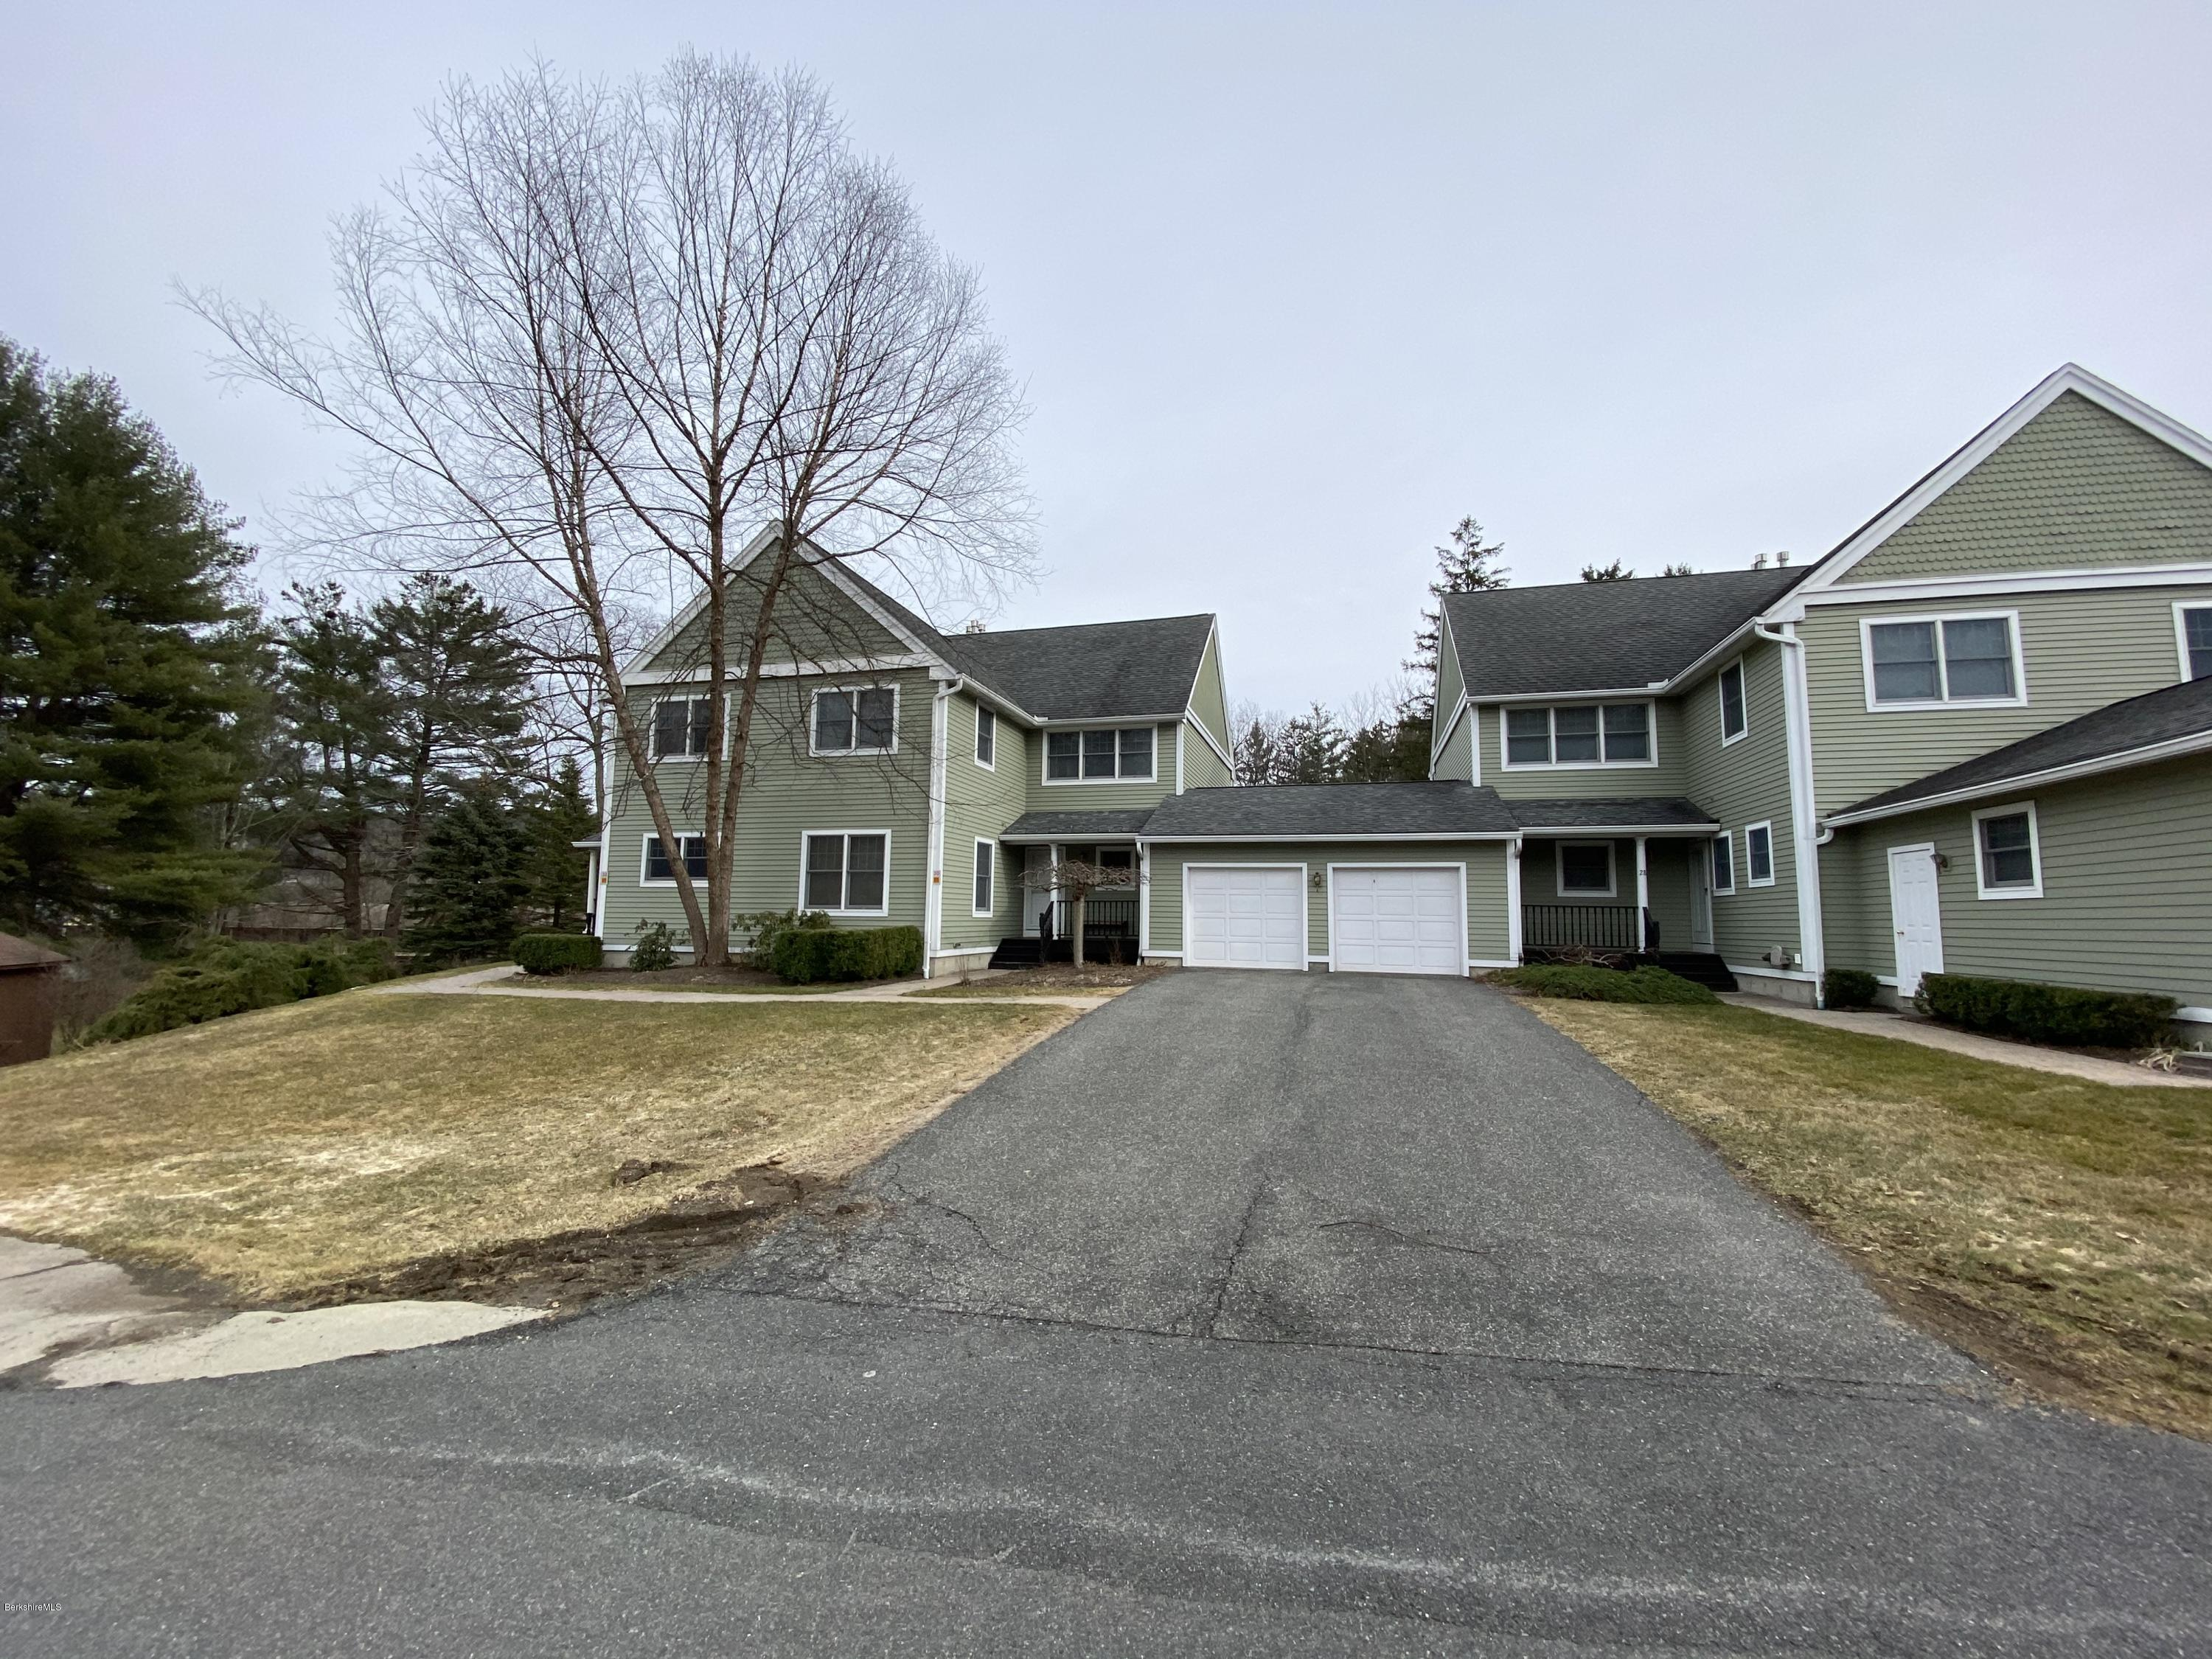 30 Copper Beech Great Barrington MA 01230